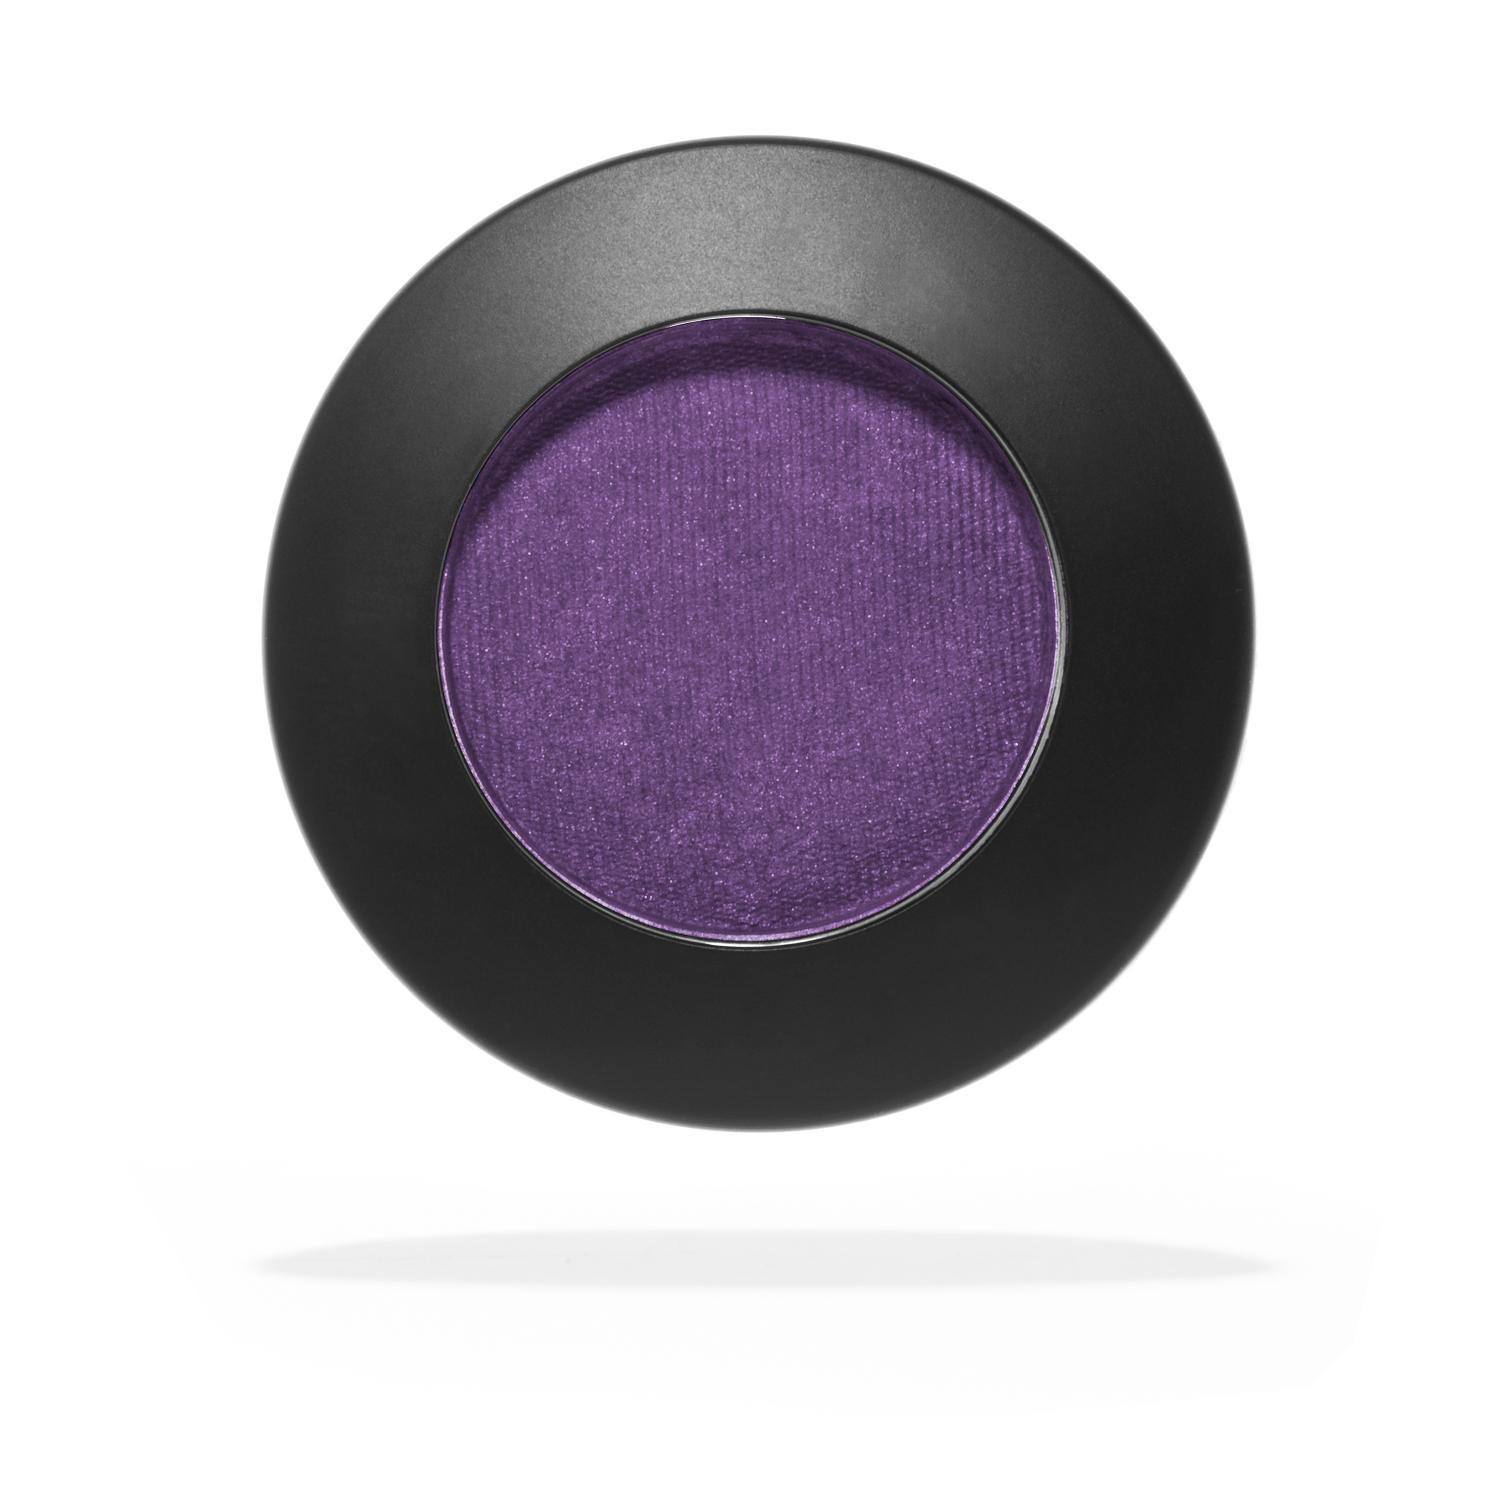 ANEM - MICRONIZED EYE SHADOW